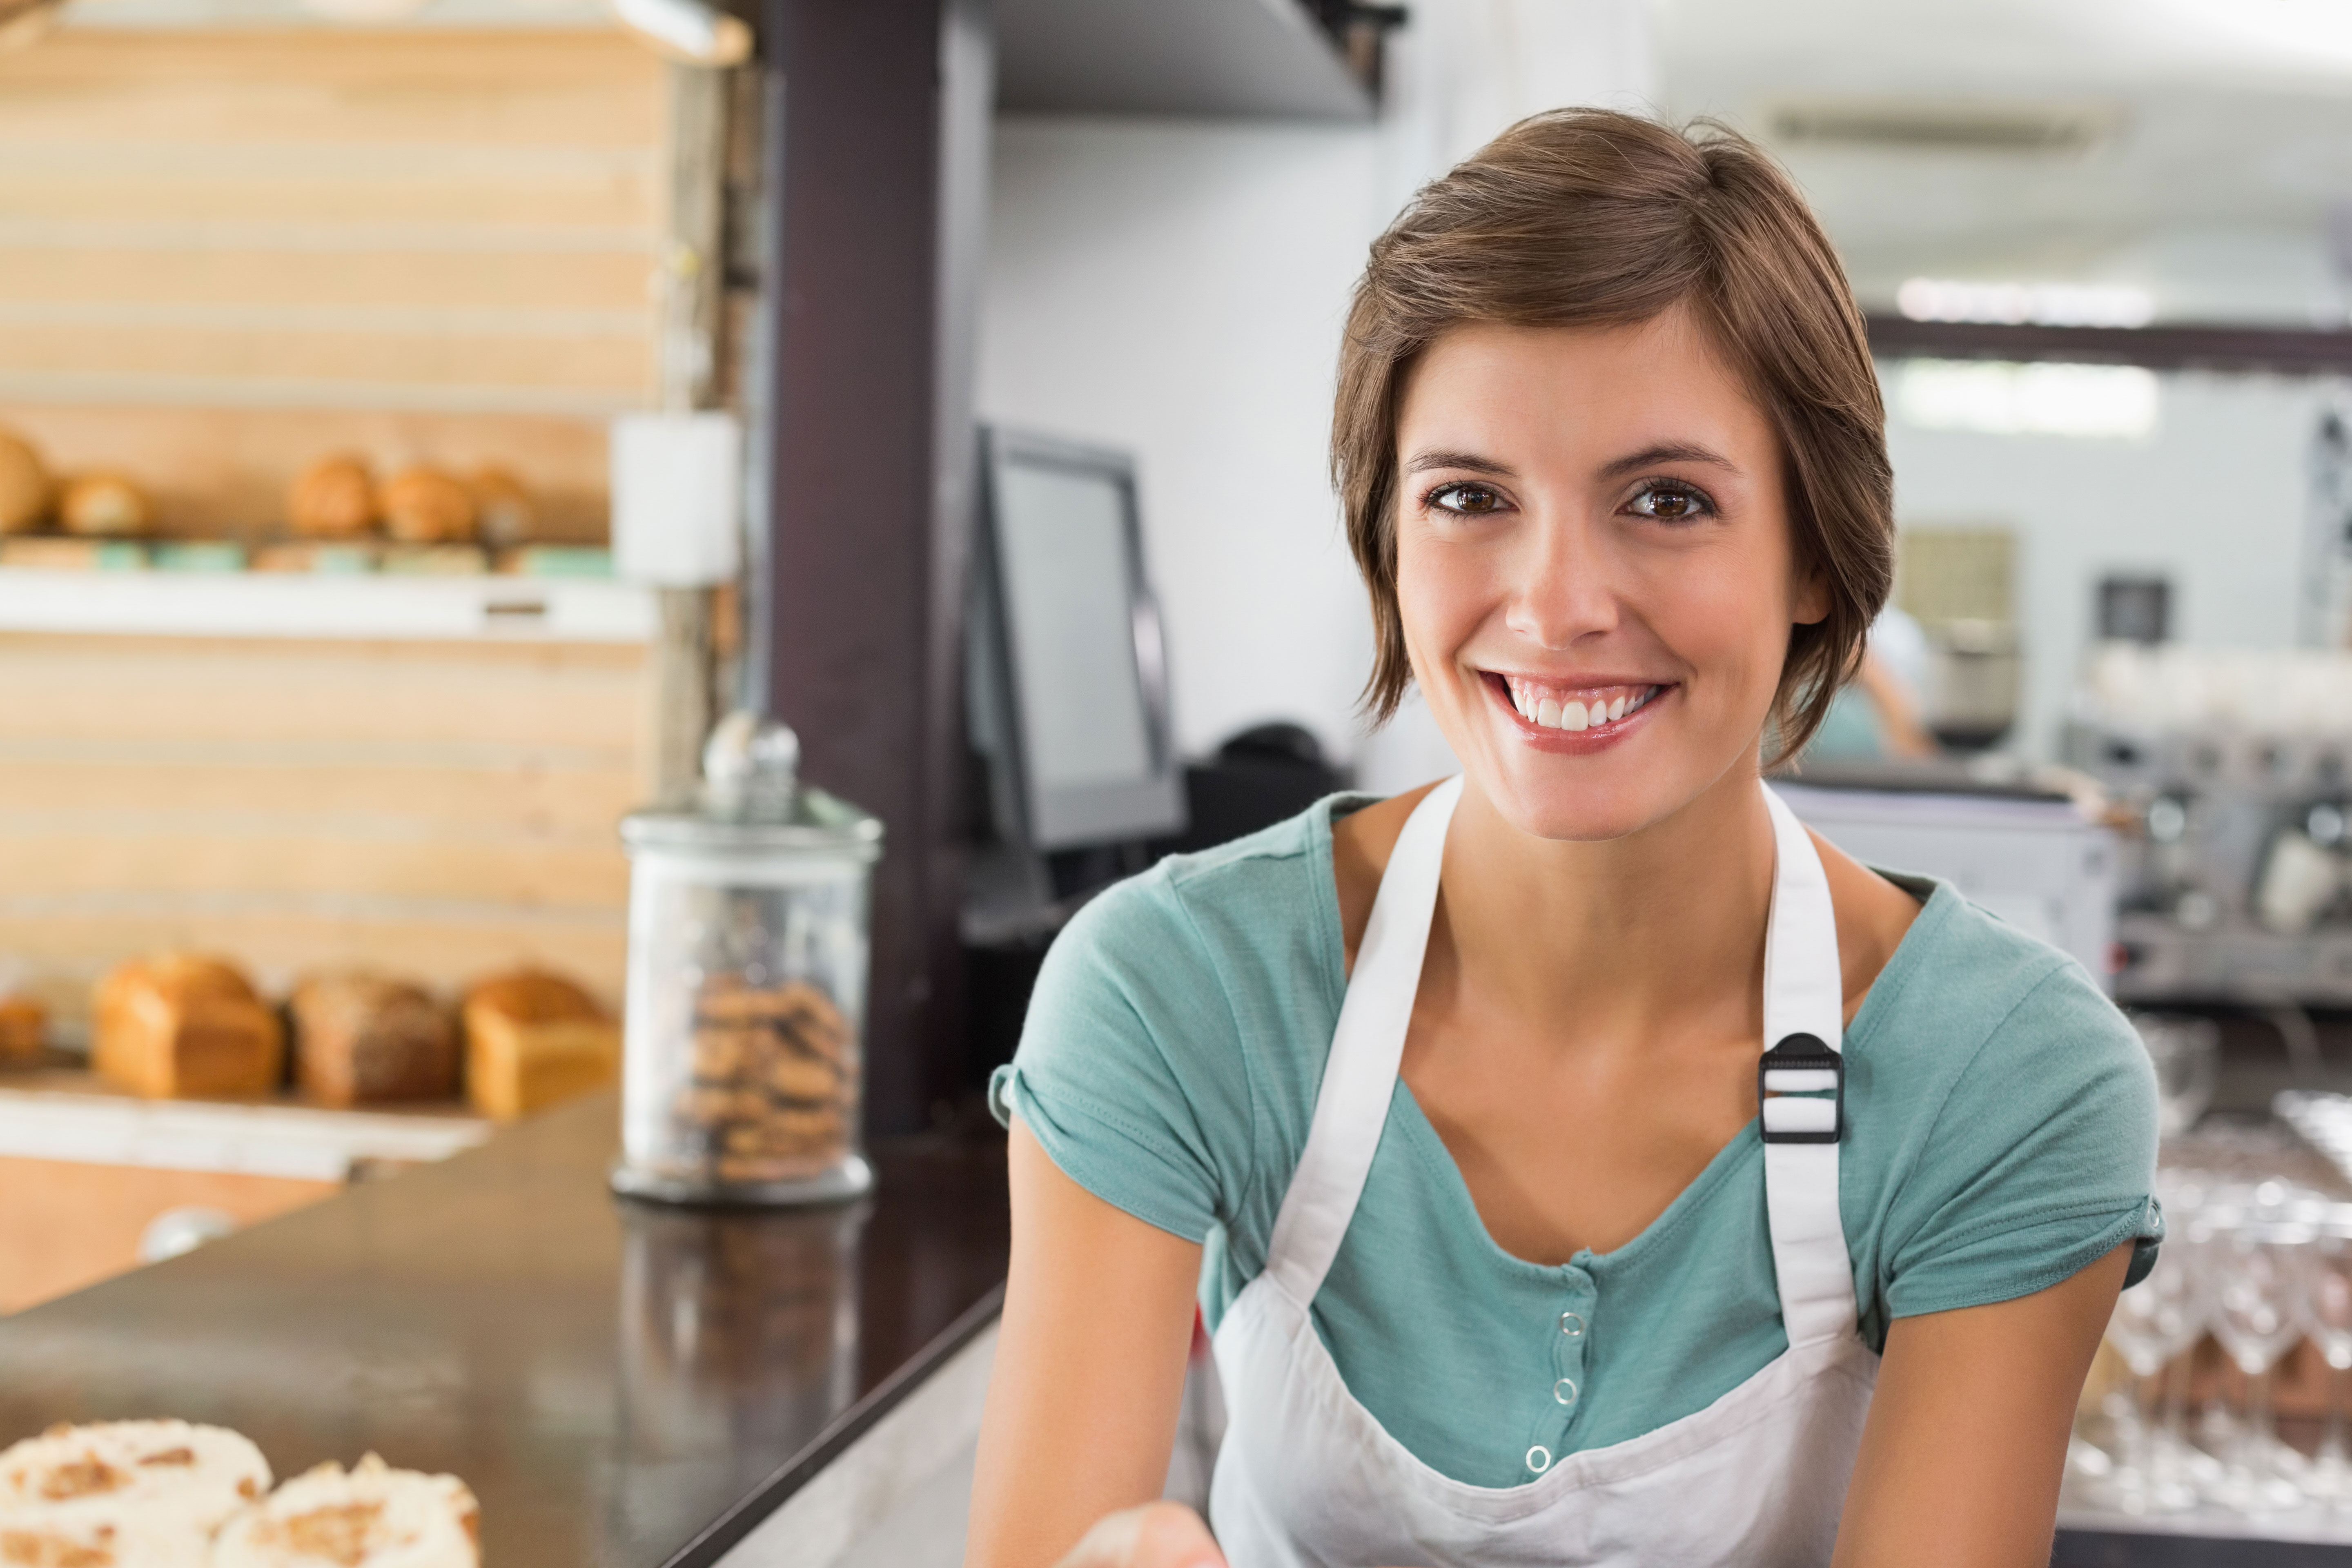 4 Tips for Promoting Your Business Locally